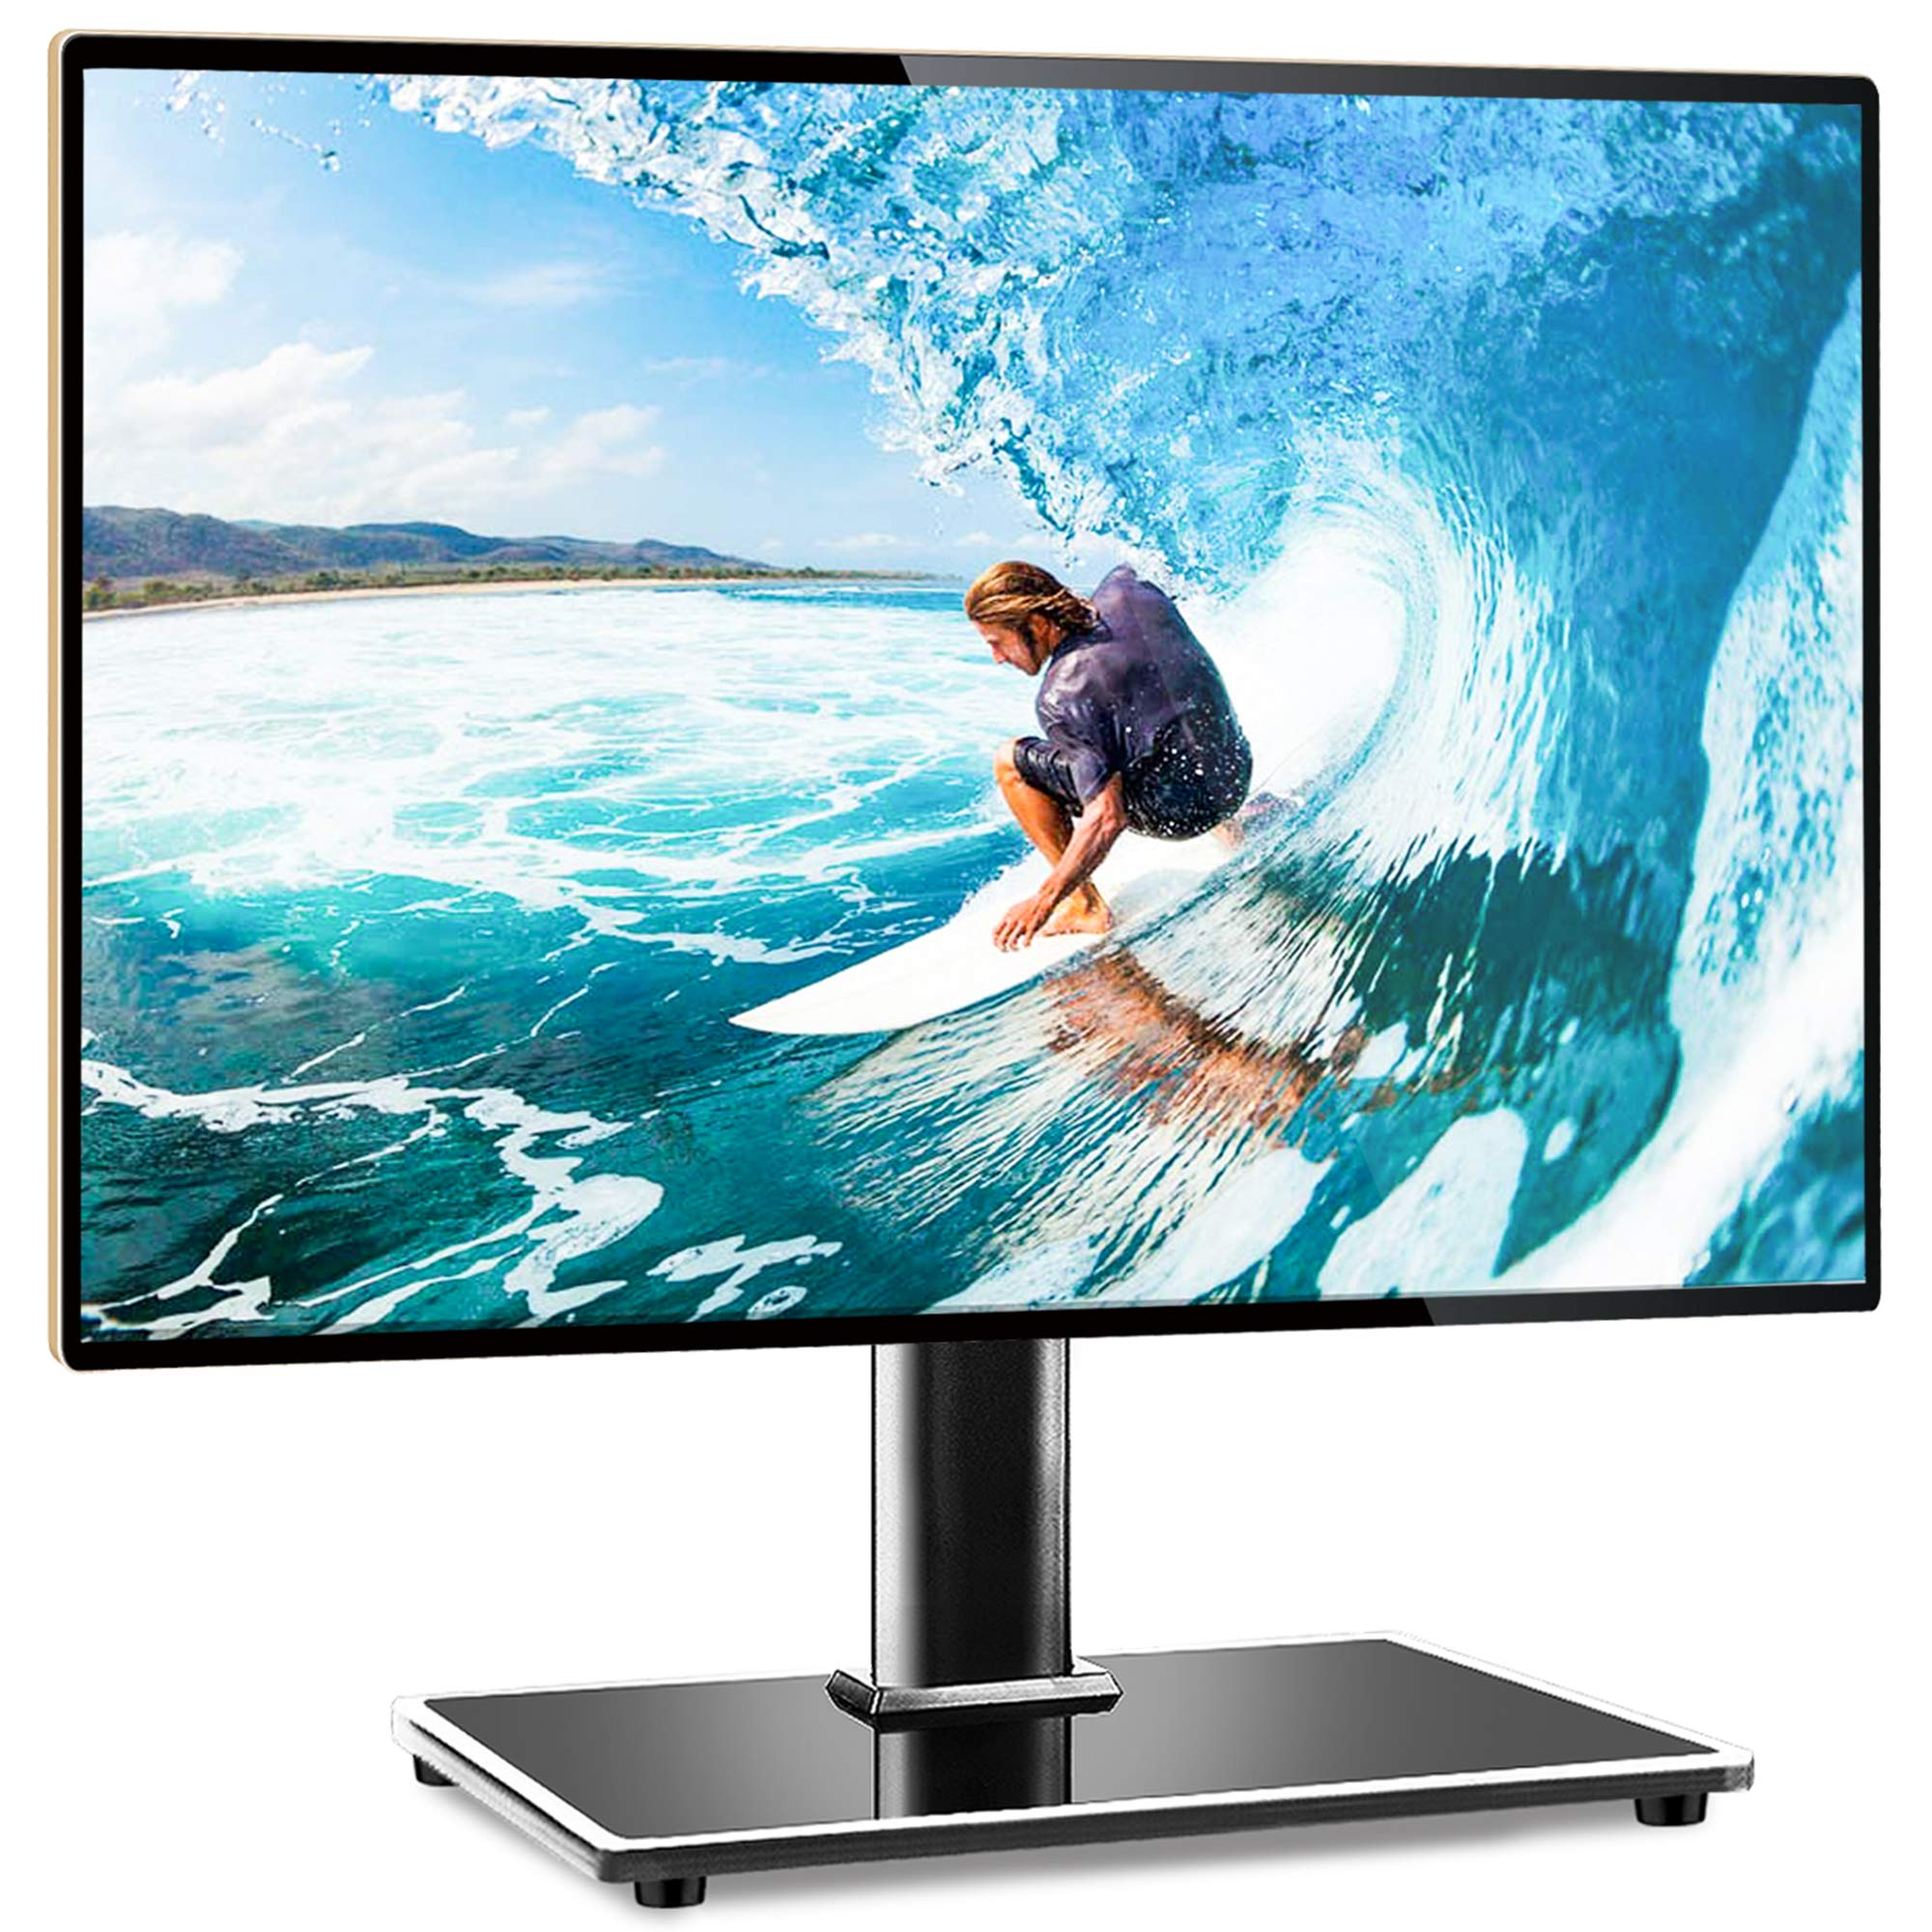 Universal TV Table Top Stand TV Legs for Most 22-55 LCD LED Plasma Flat Screens